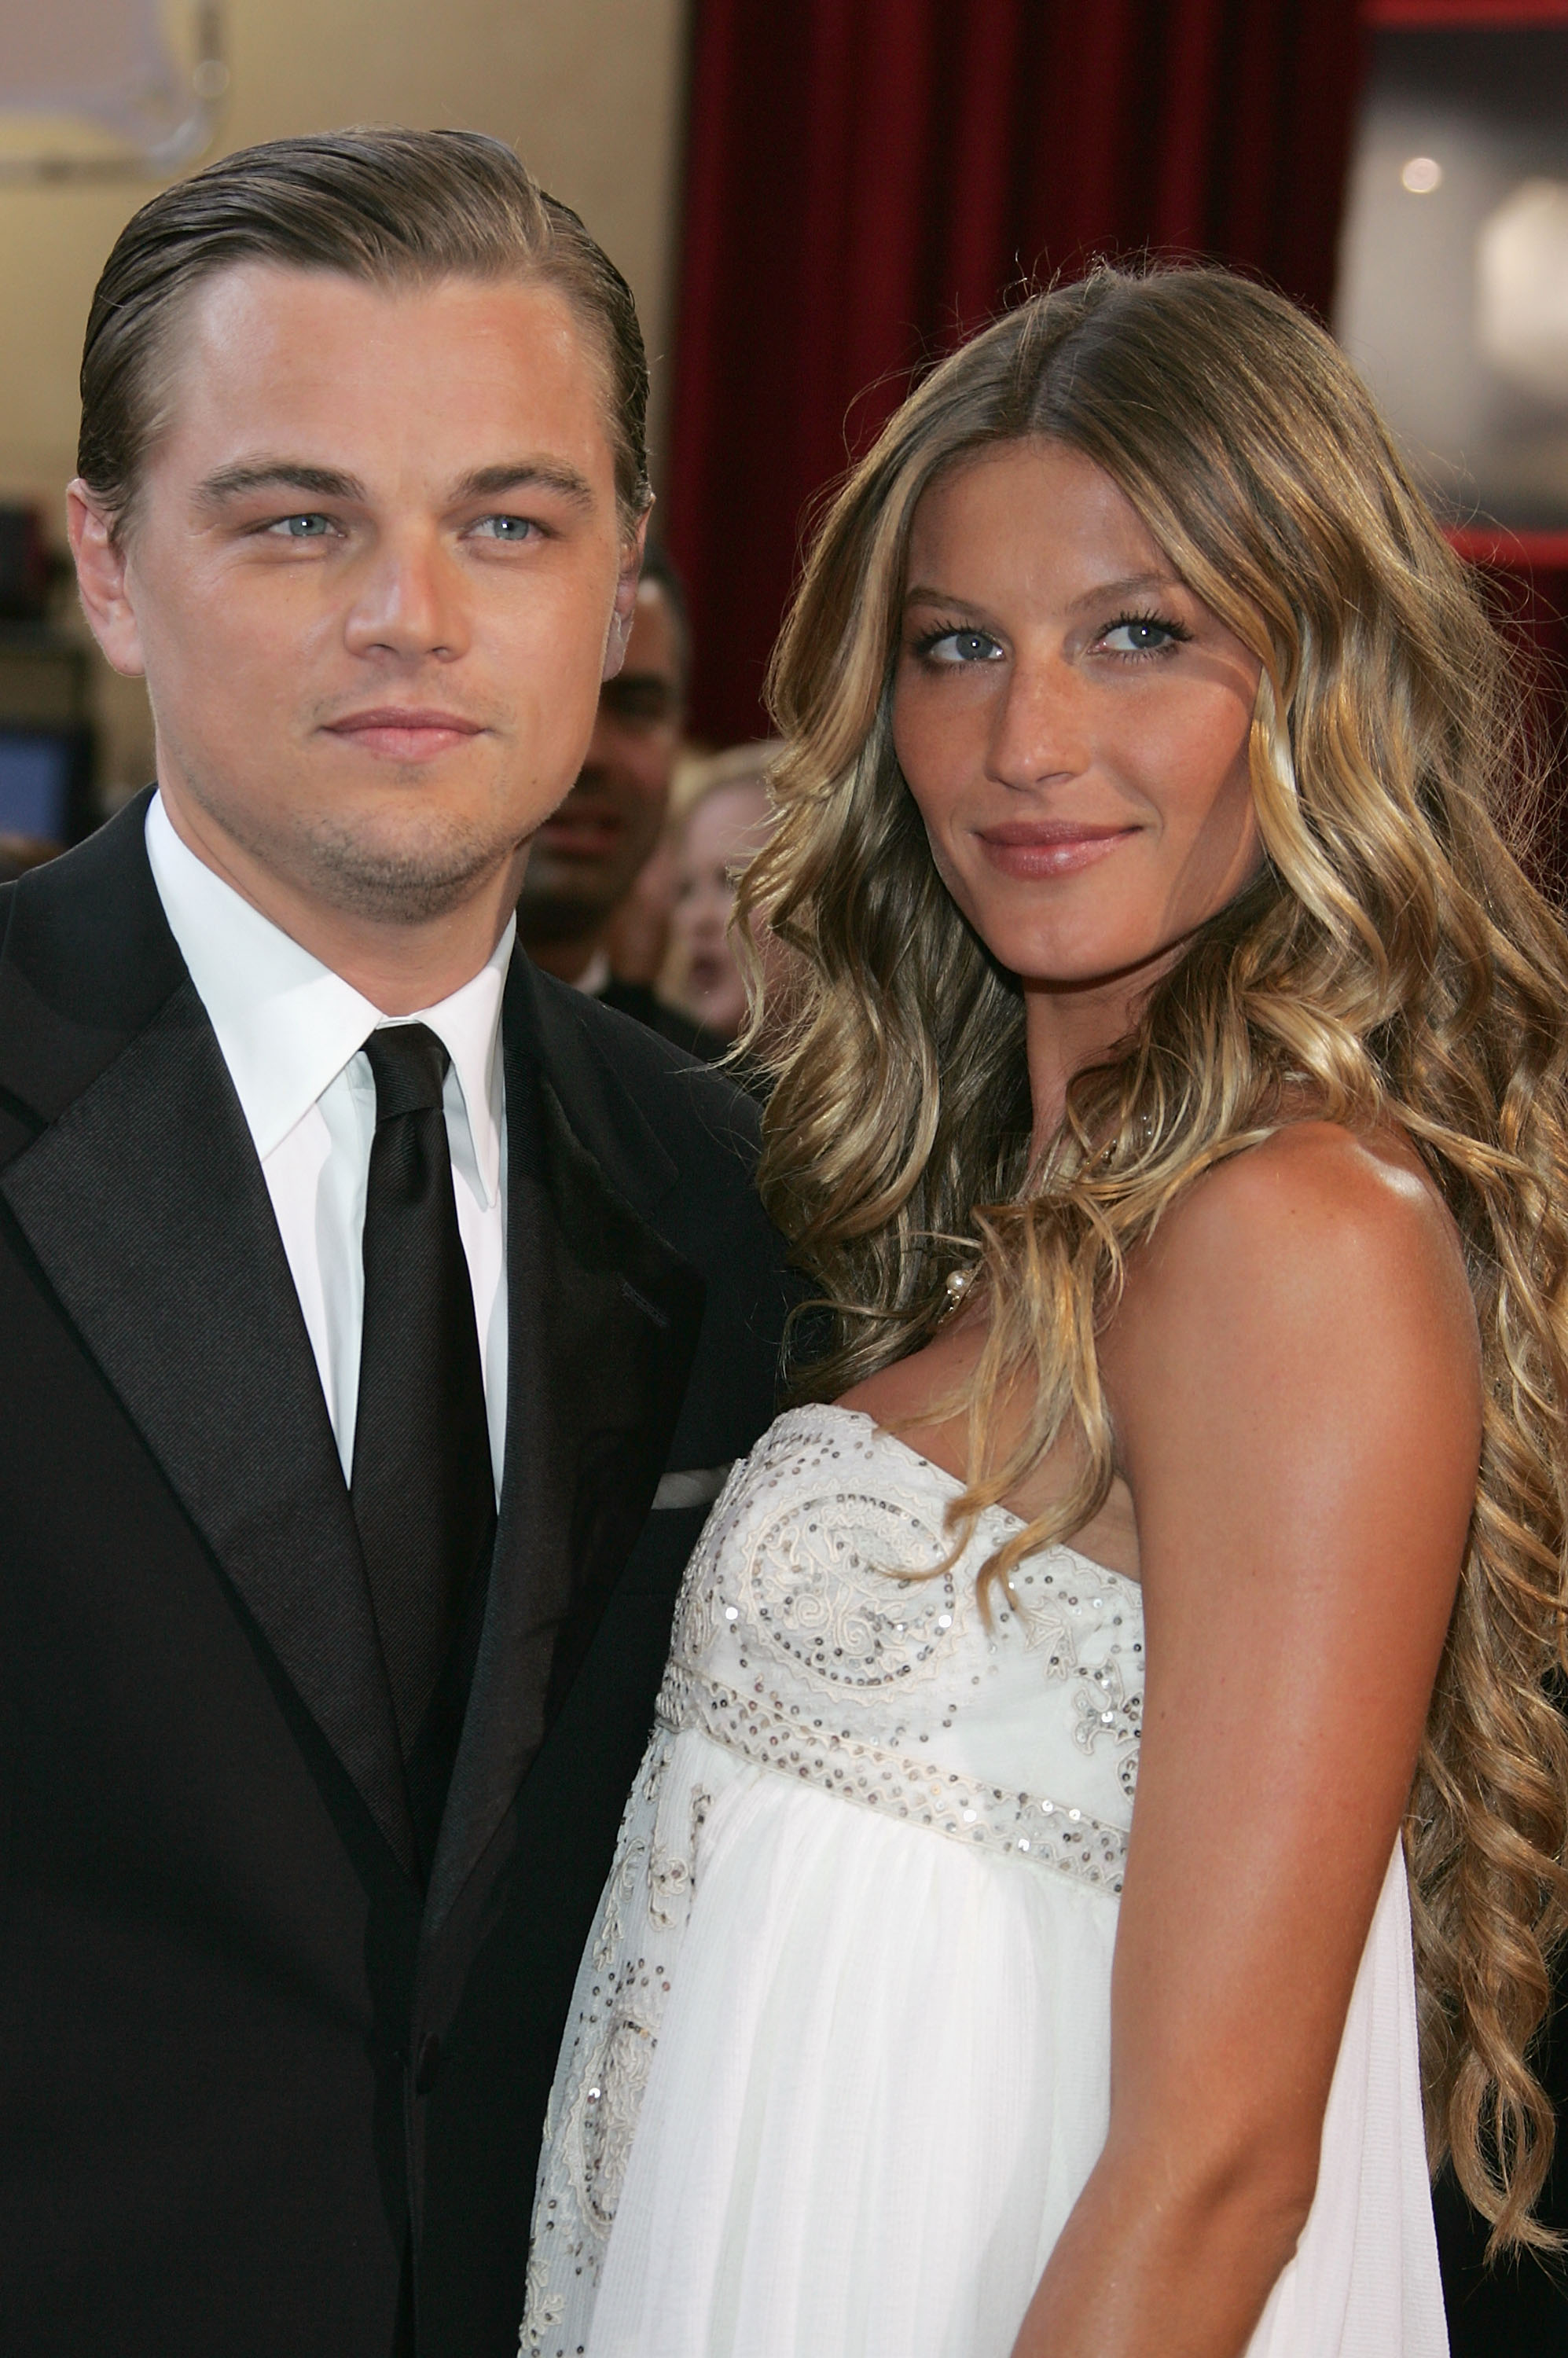 Actor Leonardo DiCaprio, nominated for Best Actor for his role in 'The Aviator,' arrives with girlfriend Brazilian model Gisele Bundchen at the 77th Annual Academy Awards at the Kodak Theater on February 27, 2005 in Hollywood, California.